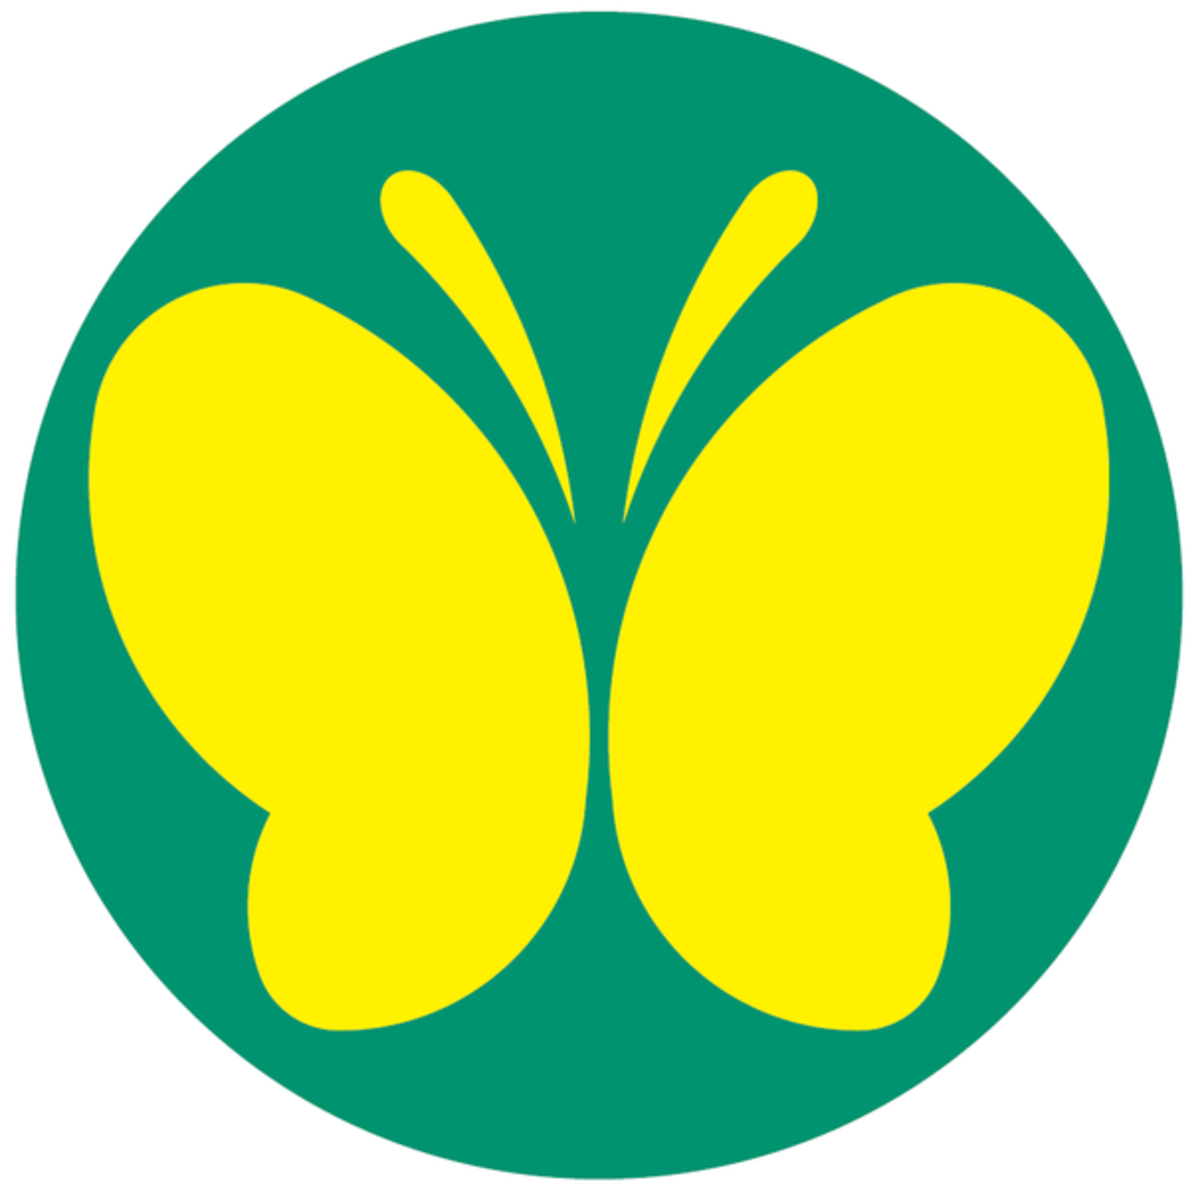 Deaf people in Japan, who won the right to drive in 2008, must display this butterfly sticker on the back of their vehicles.